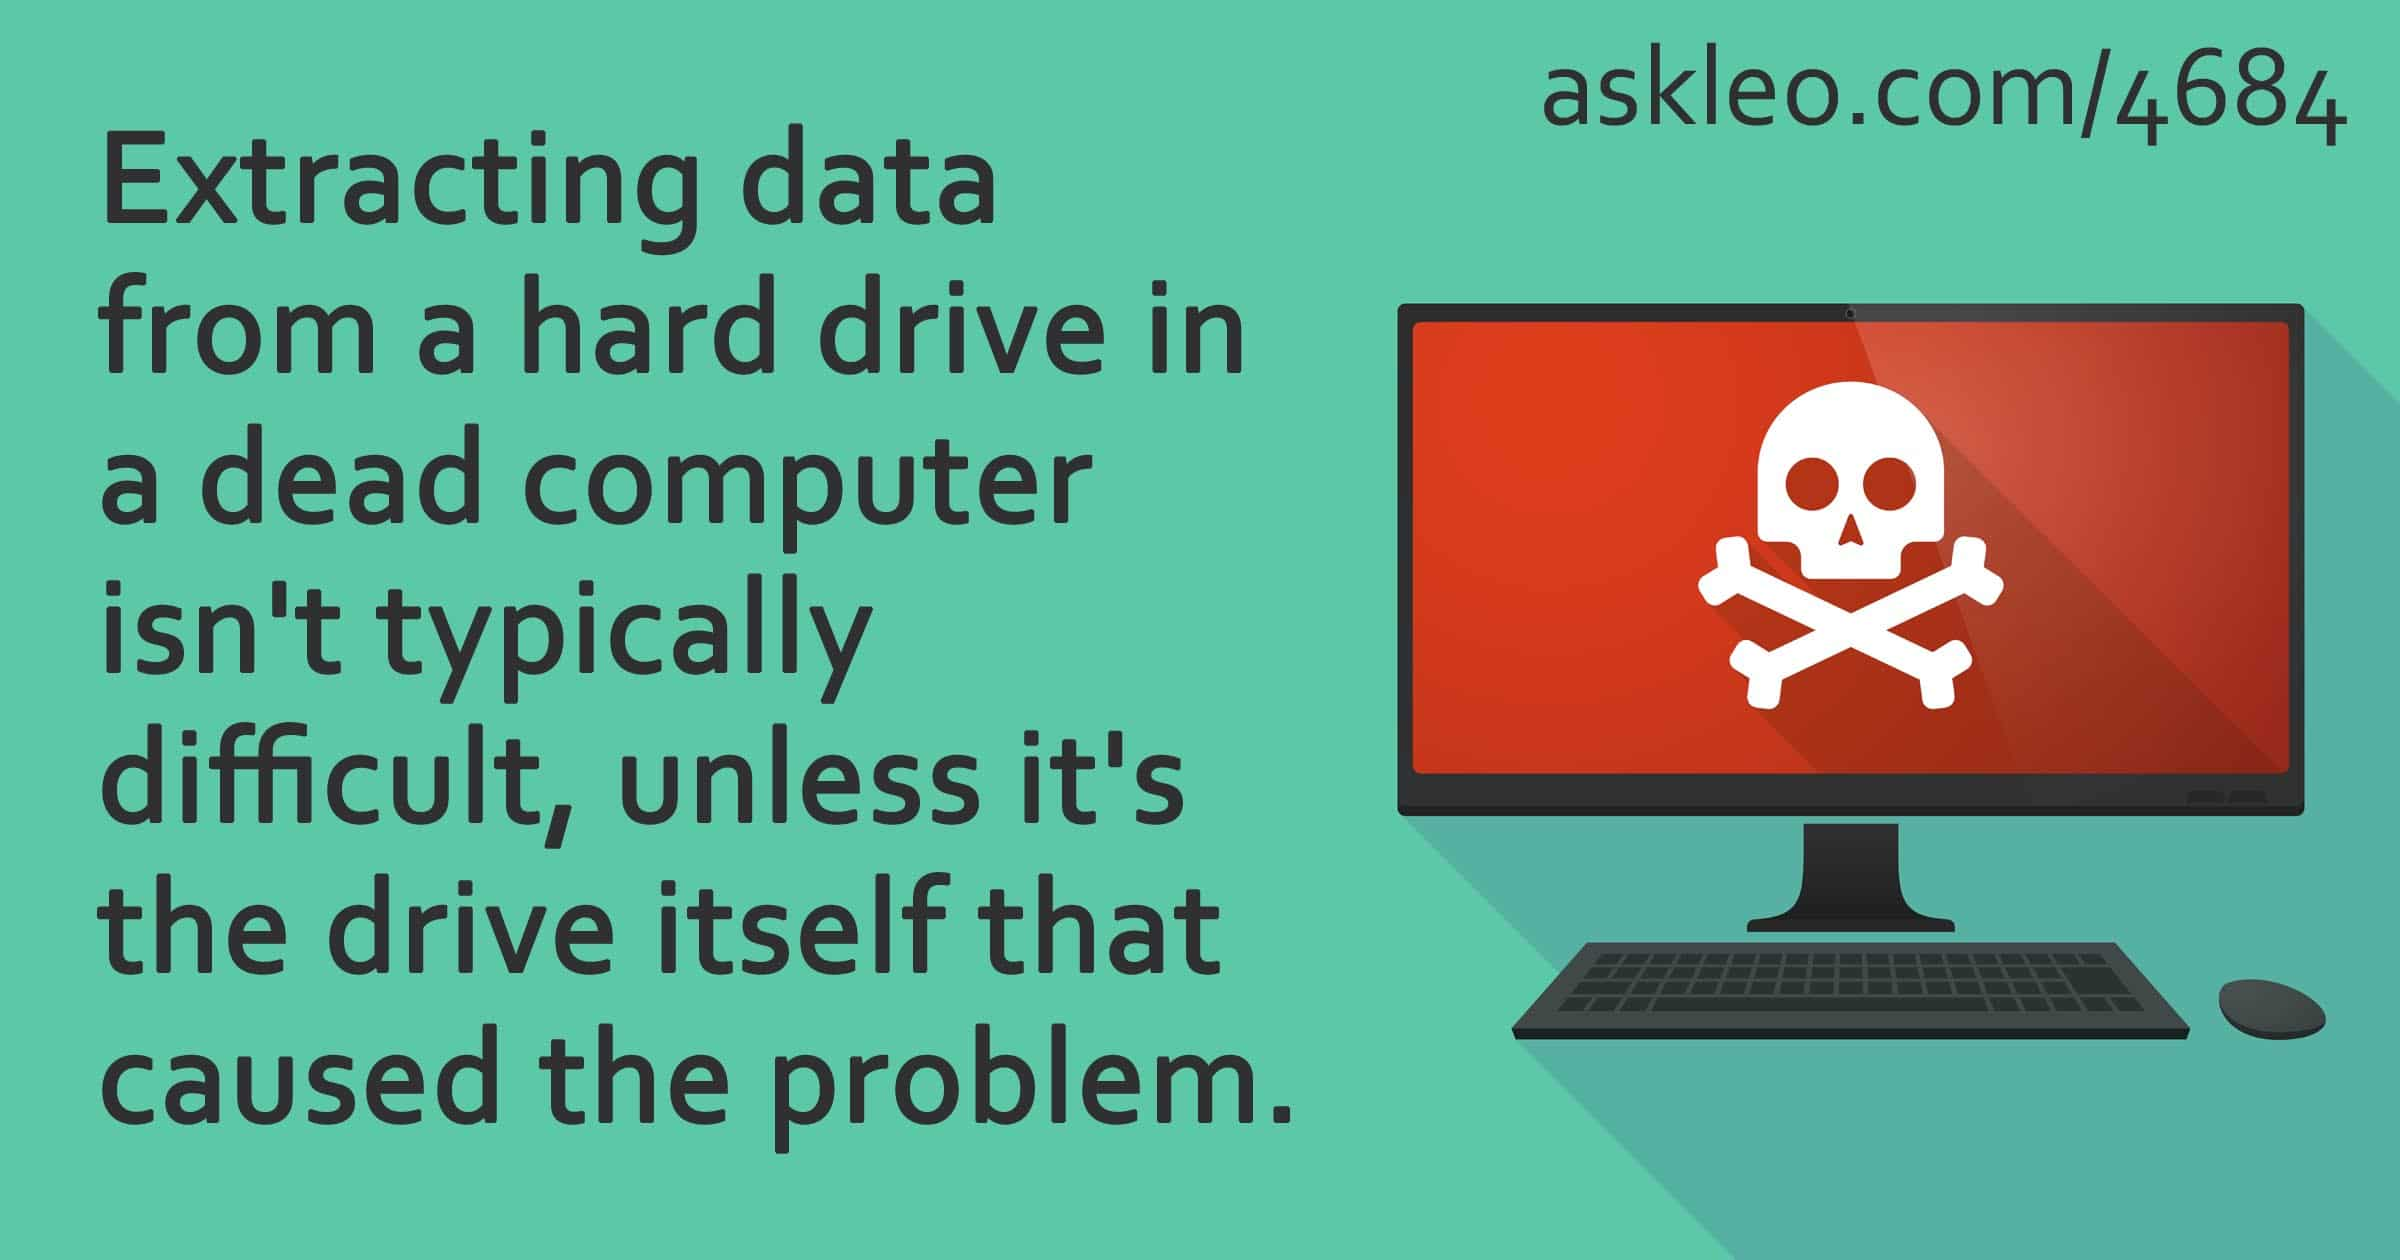 How Do I Get Data Off of the Hard Drive in a Dead Computer